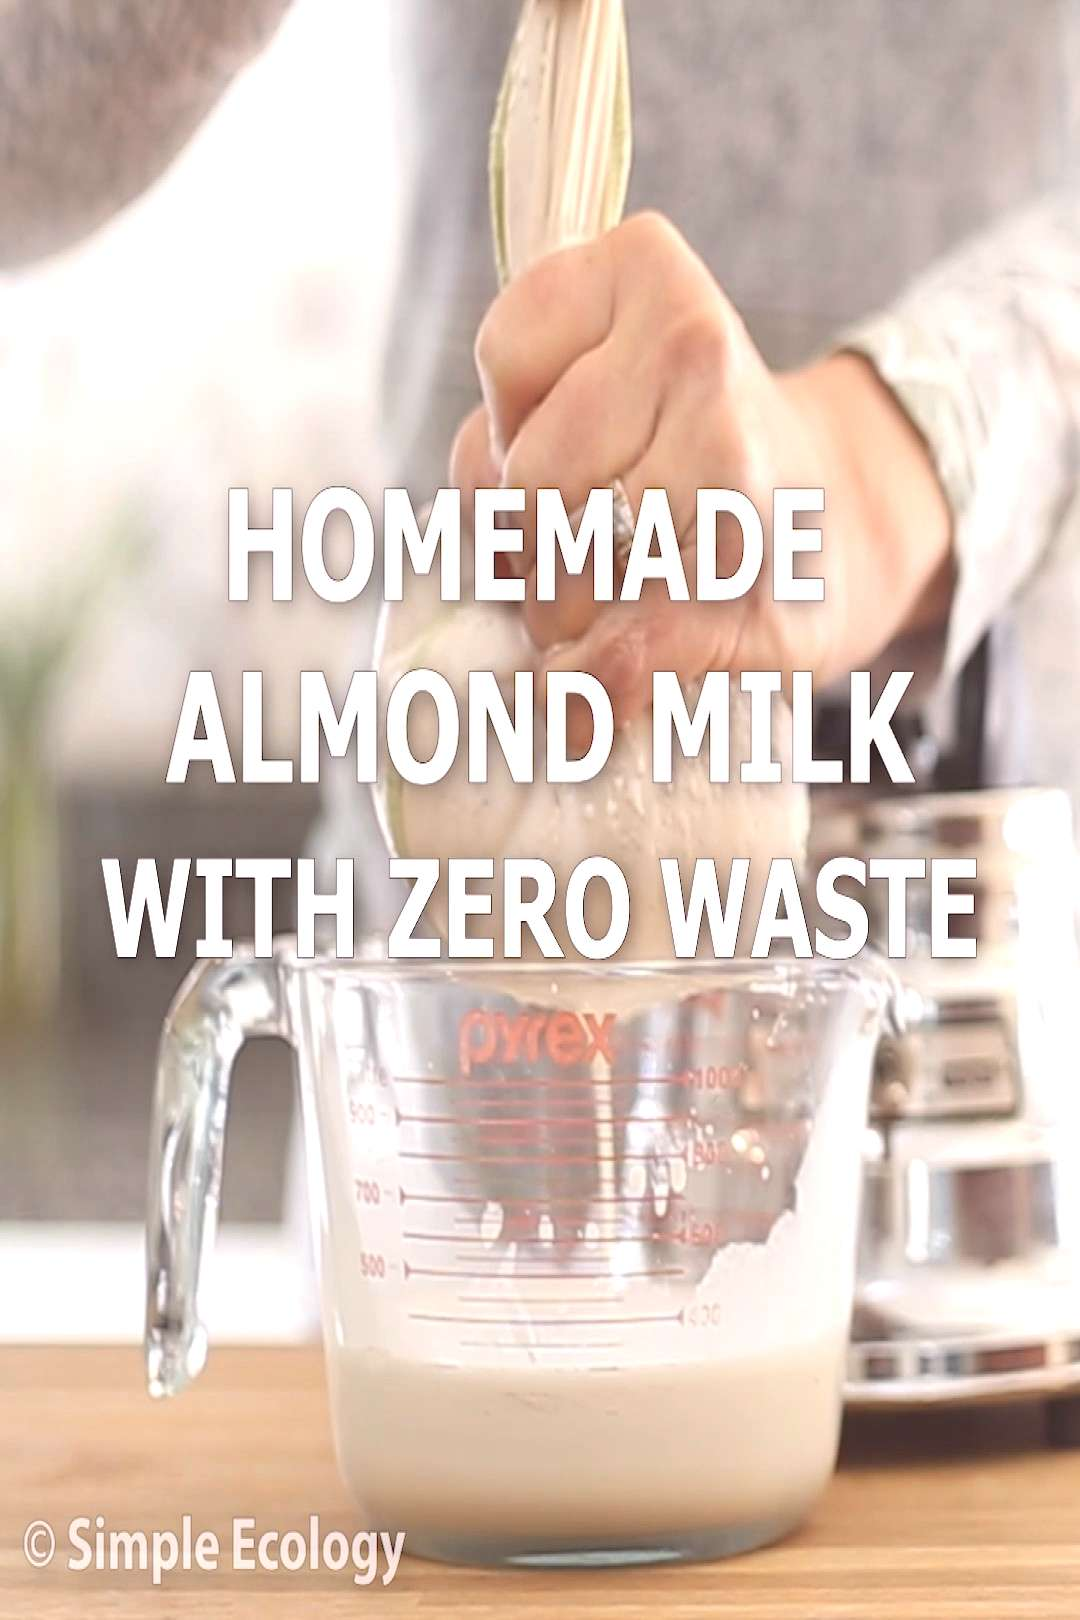 Zero Waste Almond Milk Almond milk (and other non-dairy alternatives) have become hugely popular in